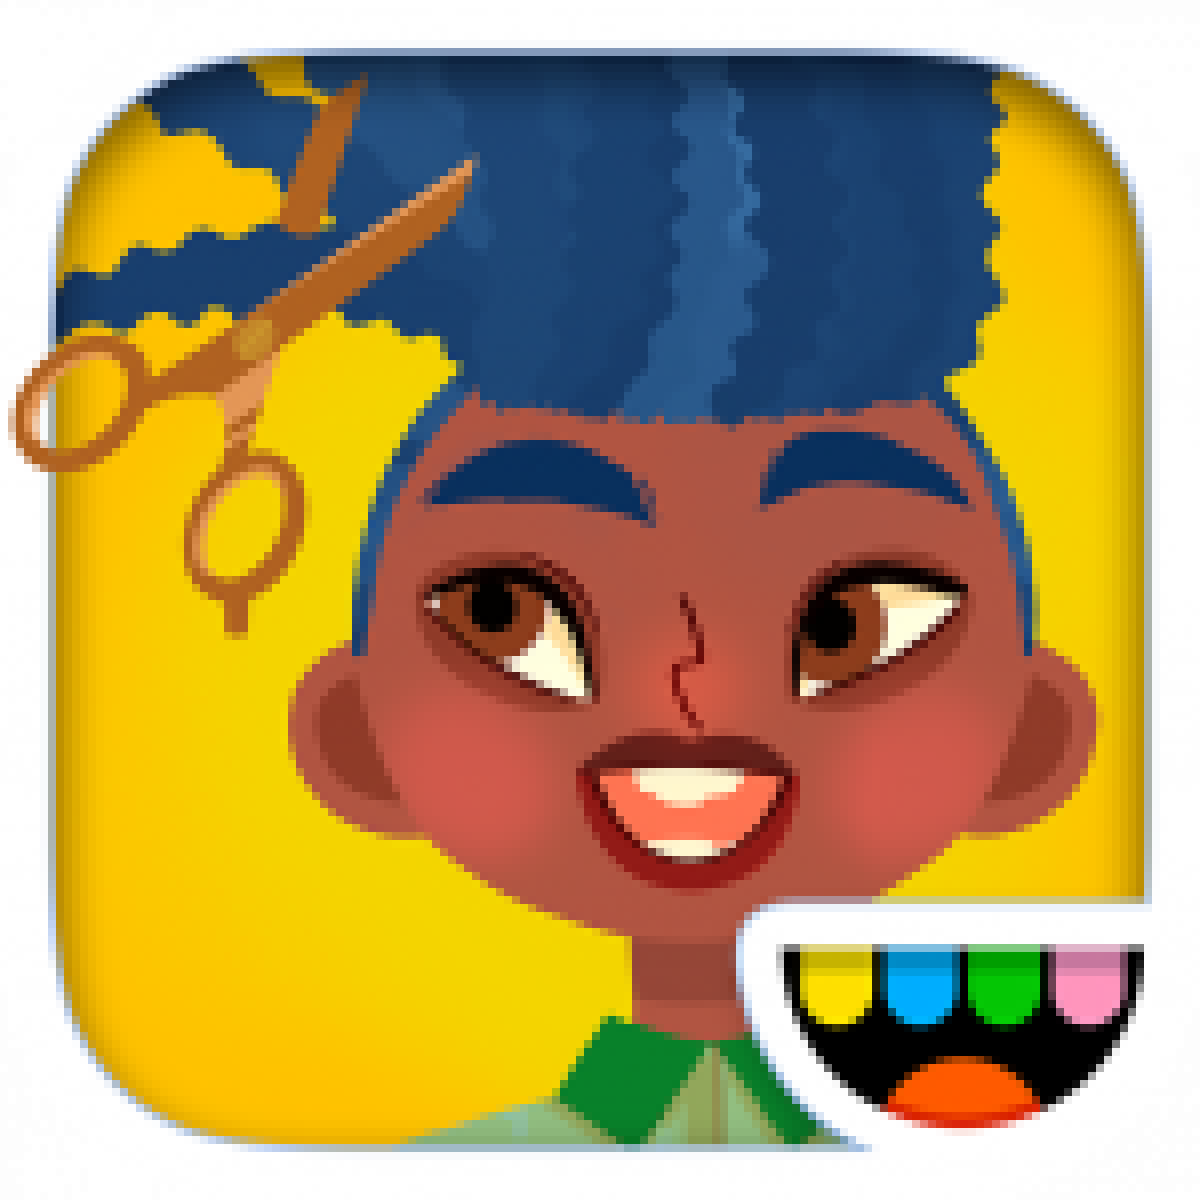 Toca Hair Salon 1000 MOD APK 100.100.100 Download (Unlocked) free for Android